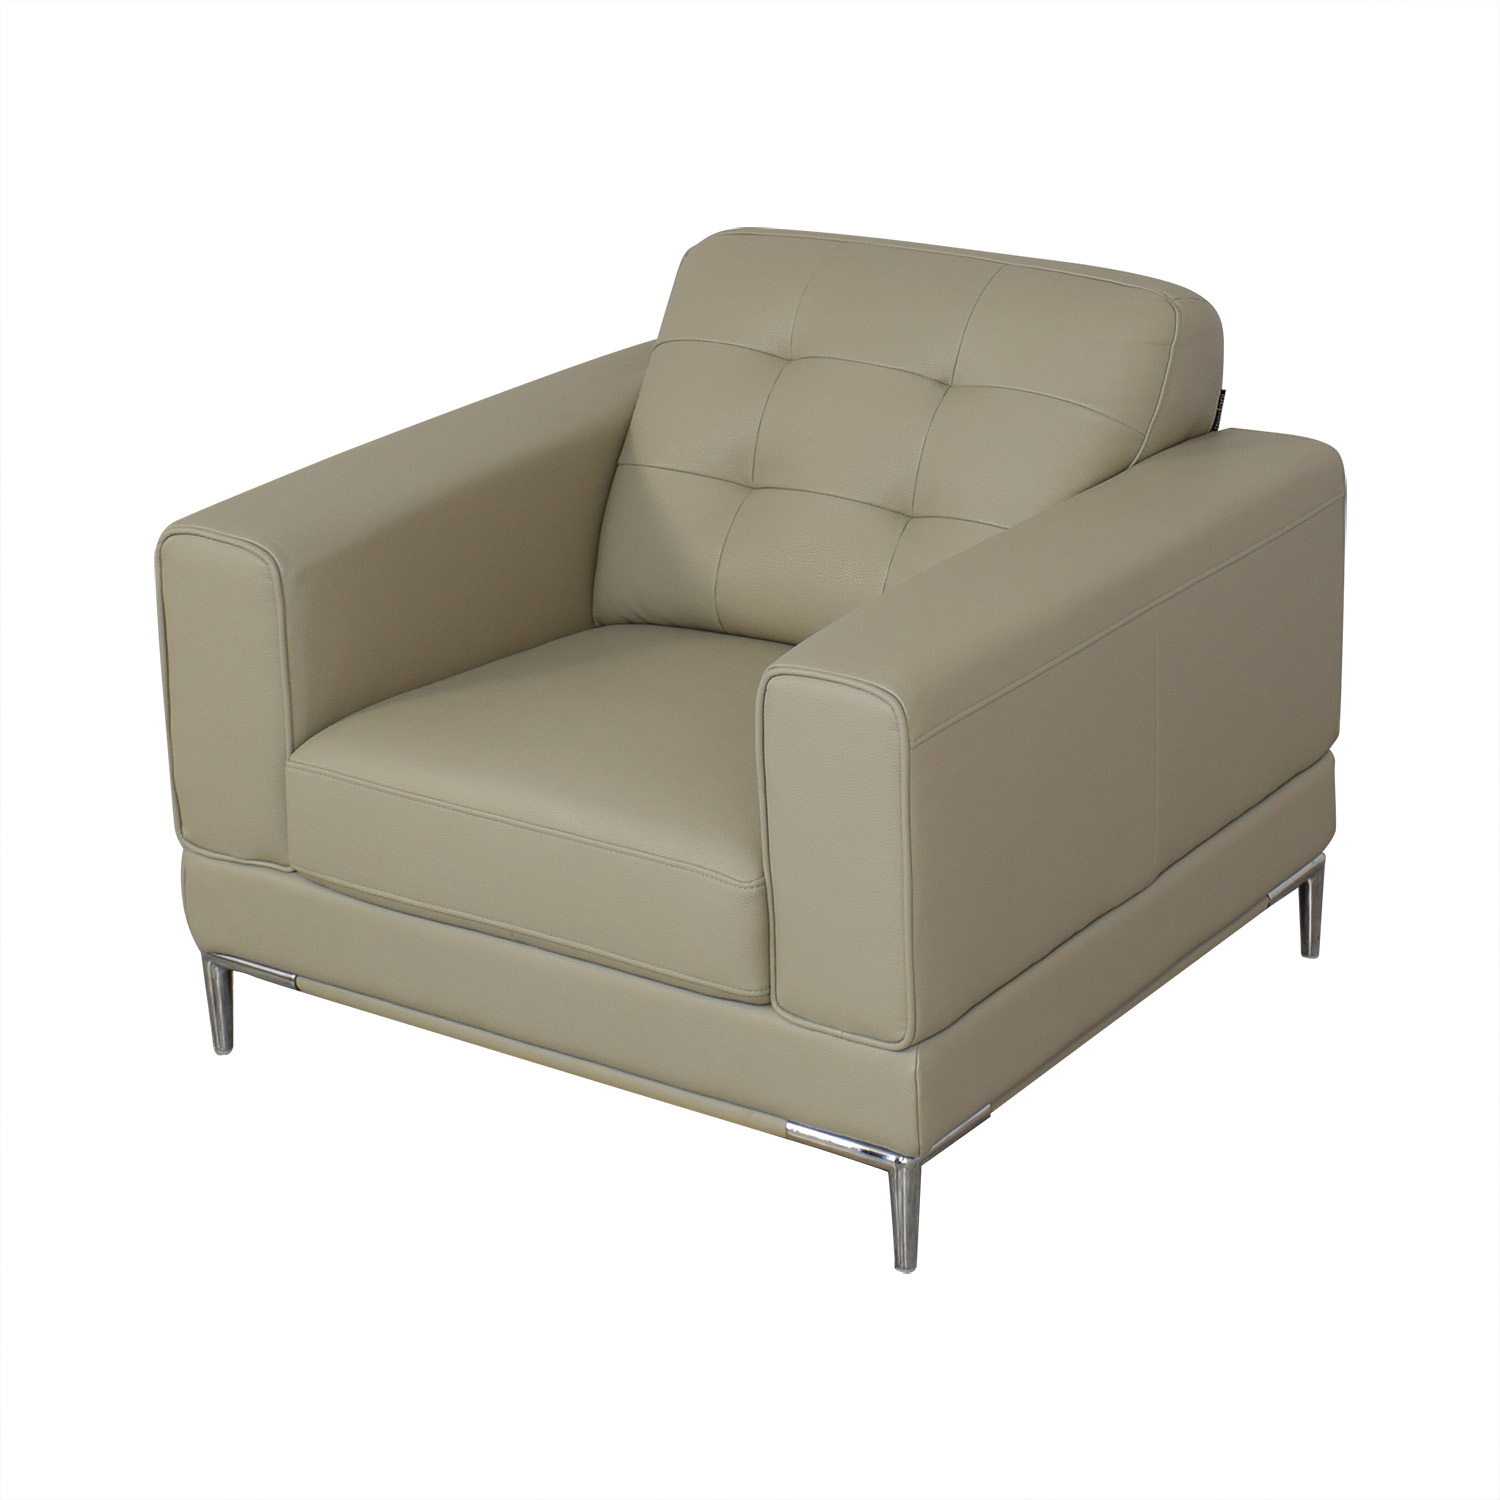 Modani Modani Modern Lounge Chair price